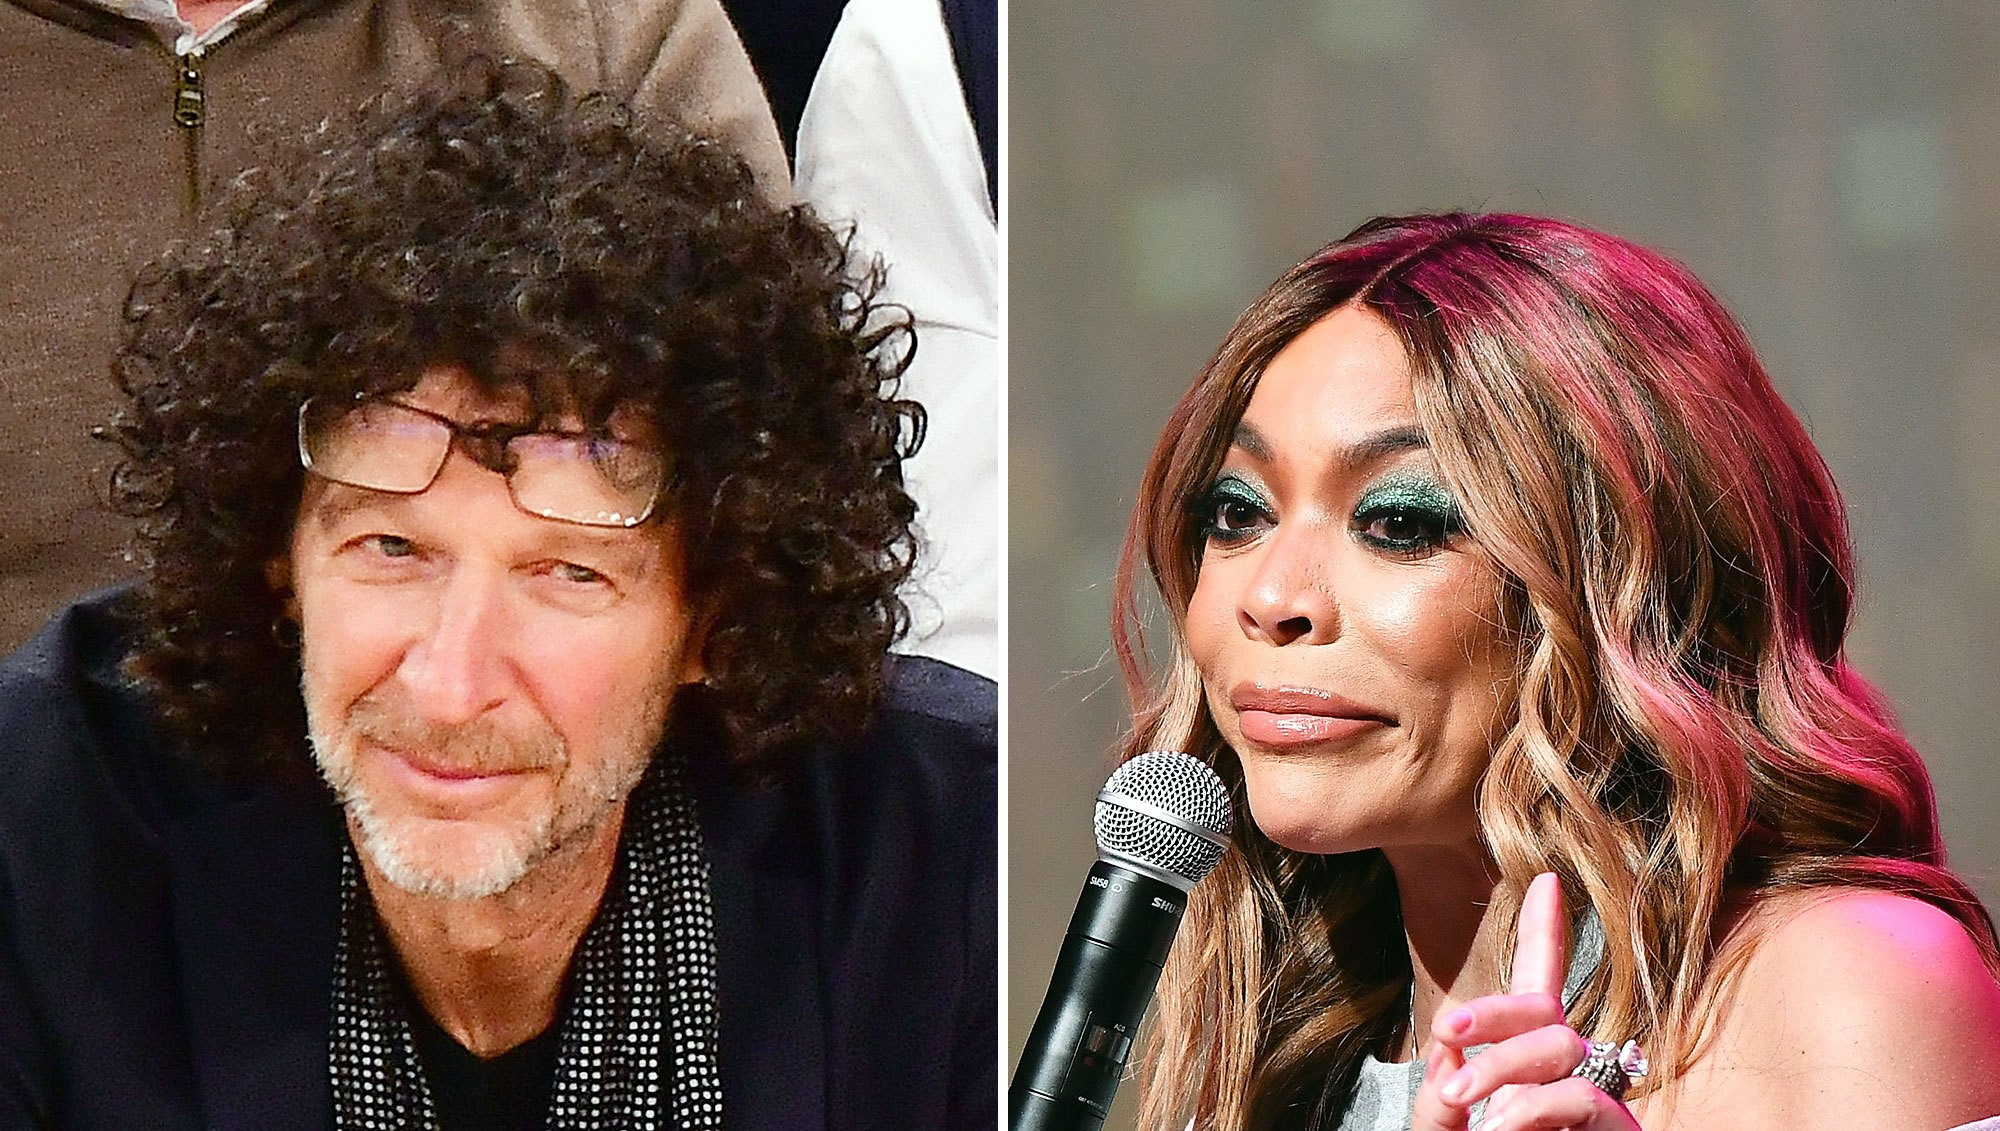 Howard Stern Wendy Williams Jealous Bitch Slams Career